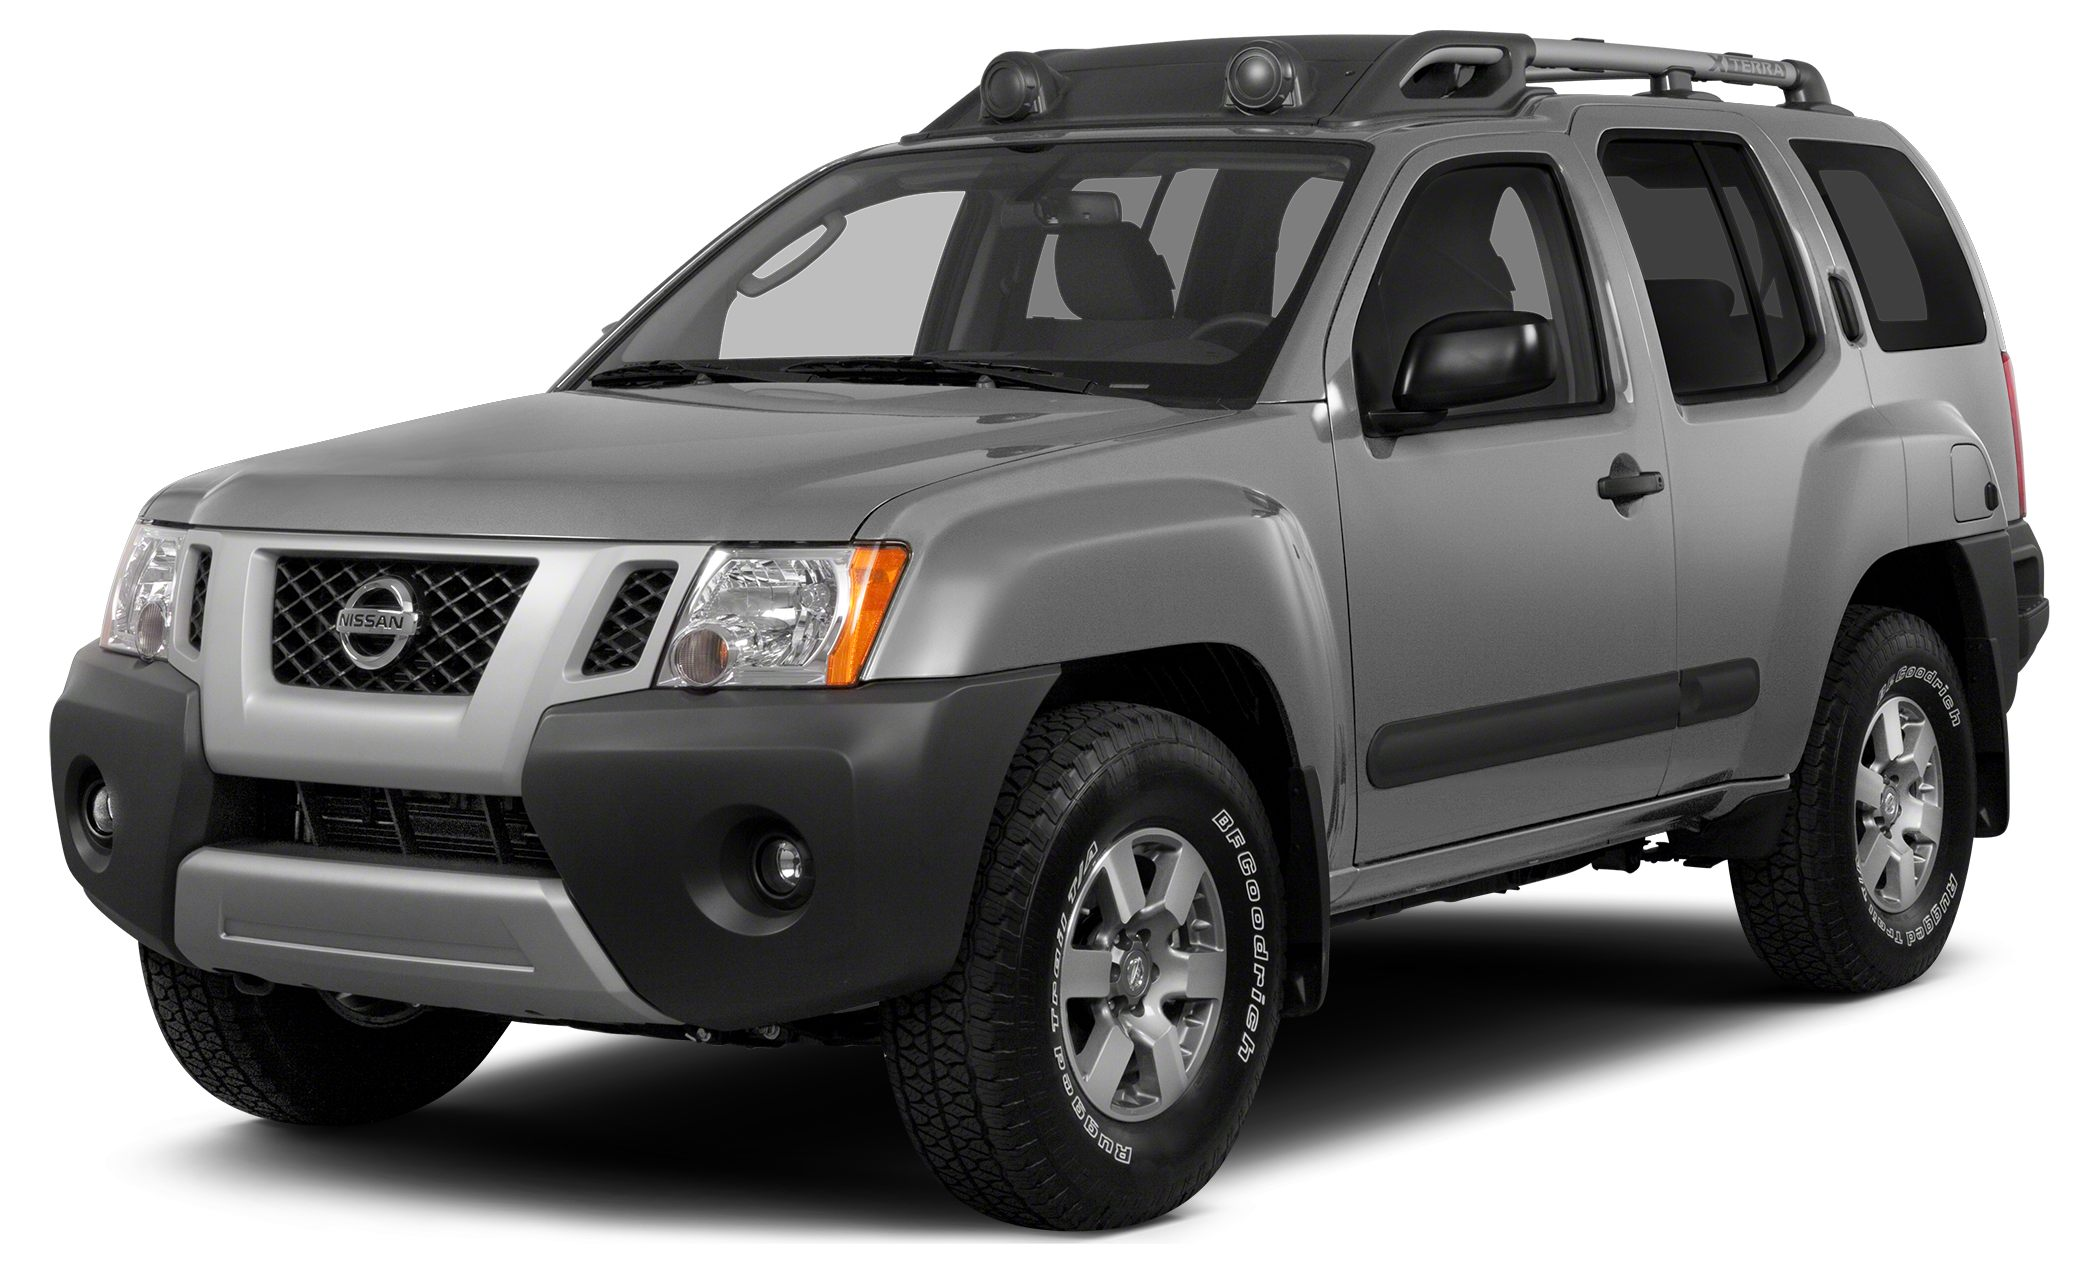 2014 Nissan Xterra S Proudly serving manatee county for over 60 years offering Cars Trucks SUVs